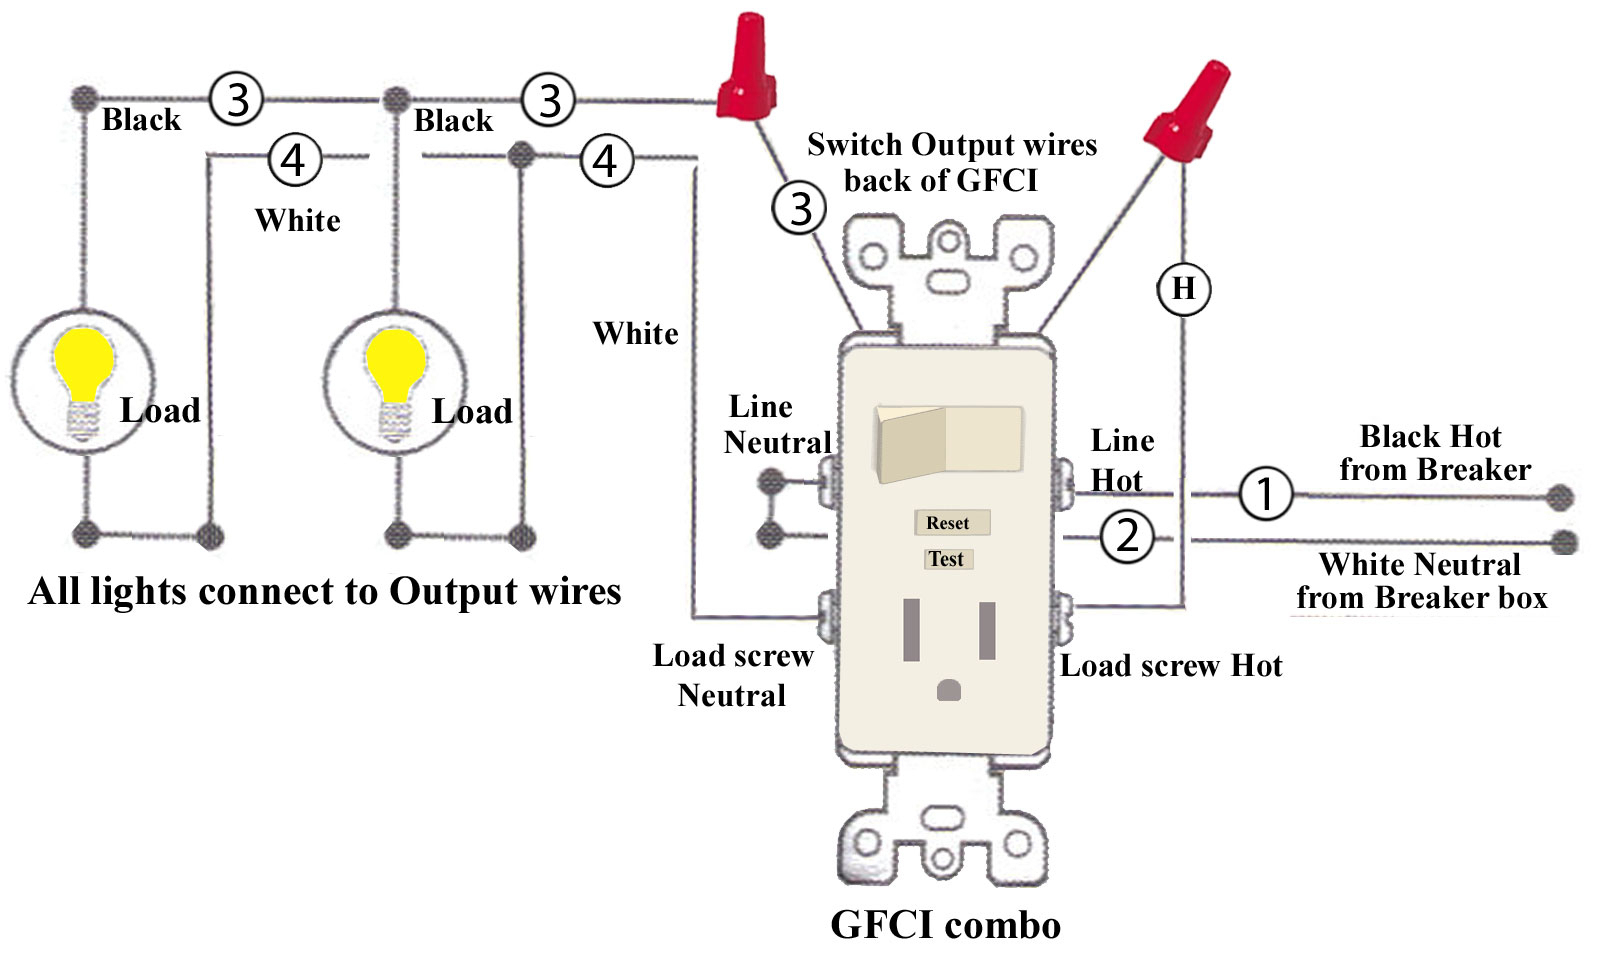 Gfci Outlet Wiring Diagram Combo Switch | Wiring Diagram - Gfci Outlet With Switch Wiring Diagram